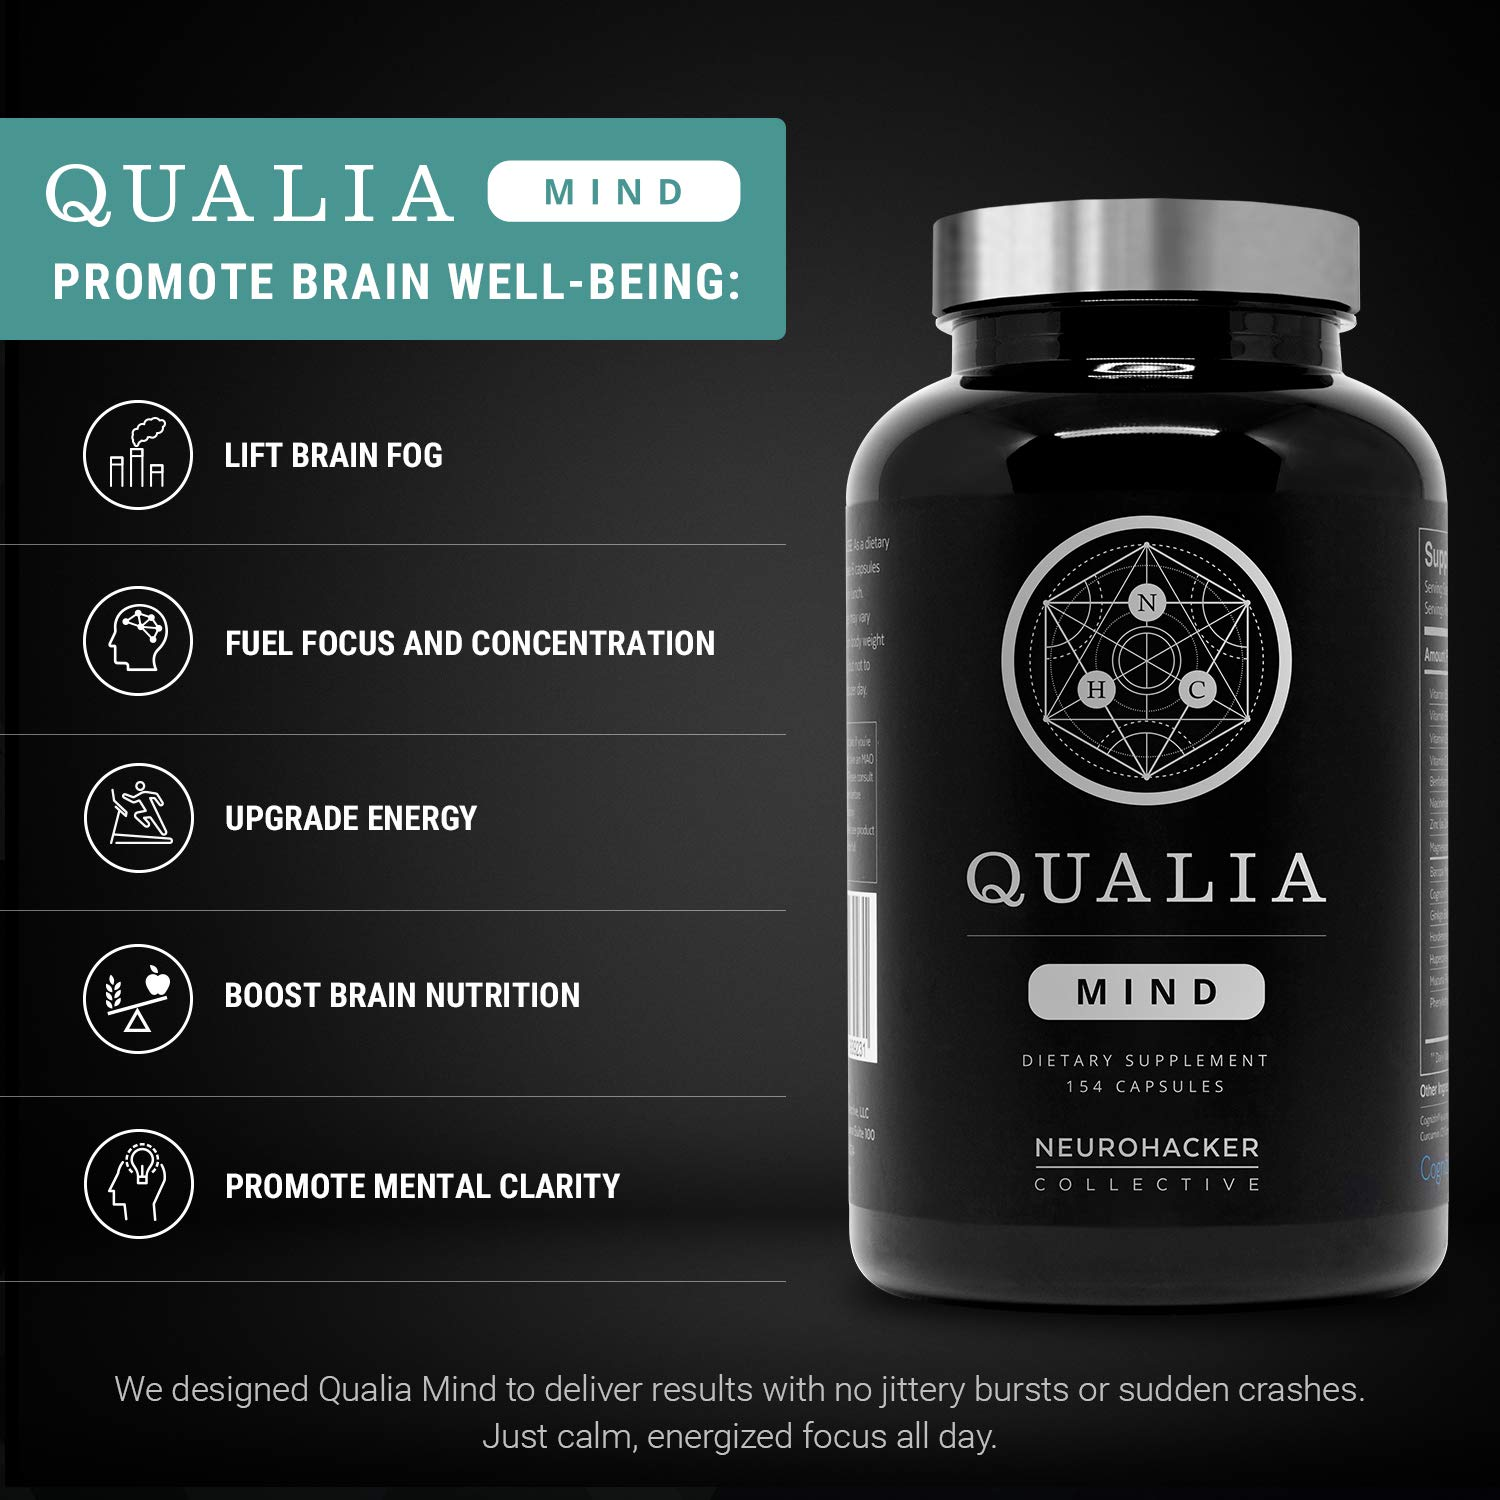 Qualia Mind Nootropics | Top Brain Supplement for Memory, Focus, Mental Energy, and Concentration with Ginkgo biloba, Alpha GPC, Bacopa monnieri, Celastrus paniculatus, DHA & More.(154 Ct) by NEUROHACKER COLLECTIVE (Image #2)